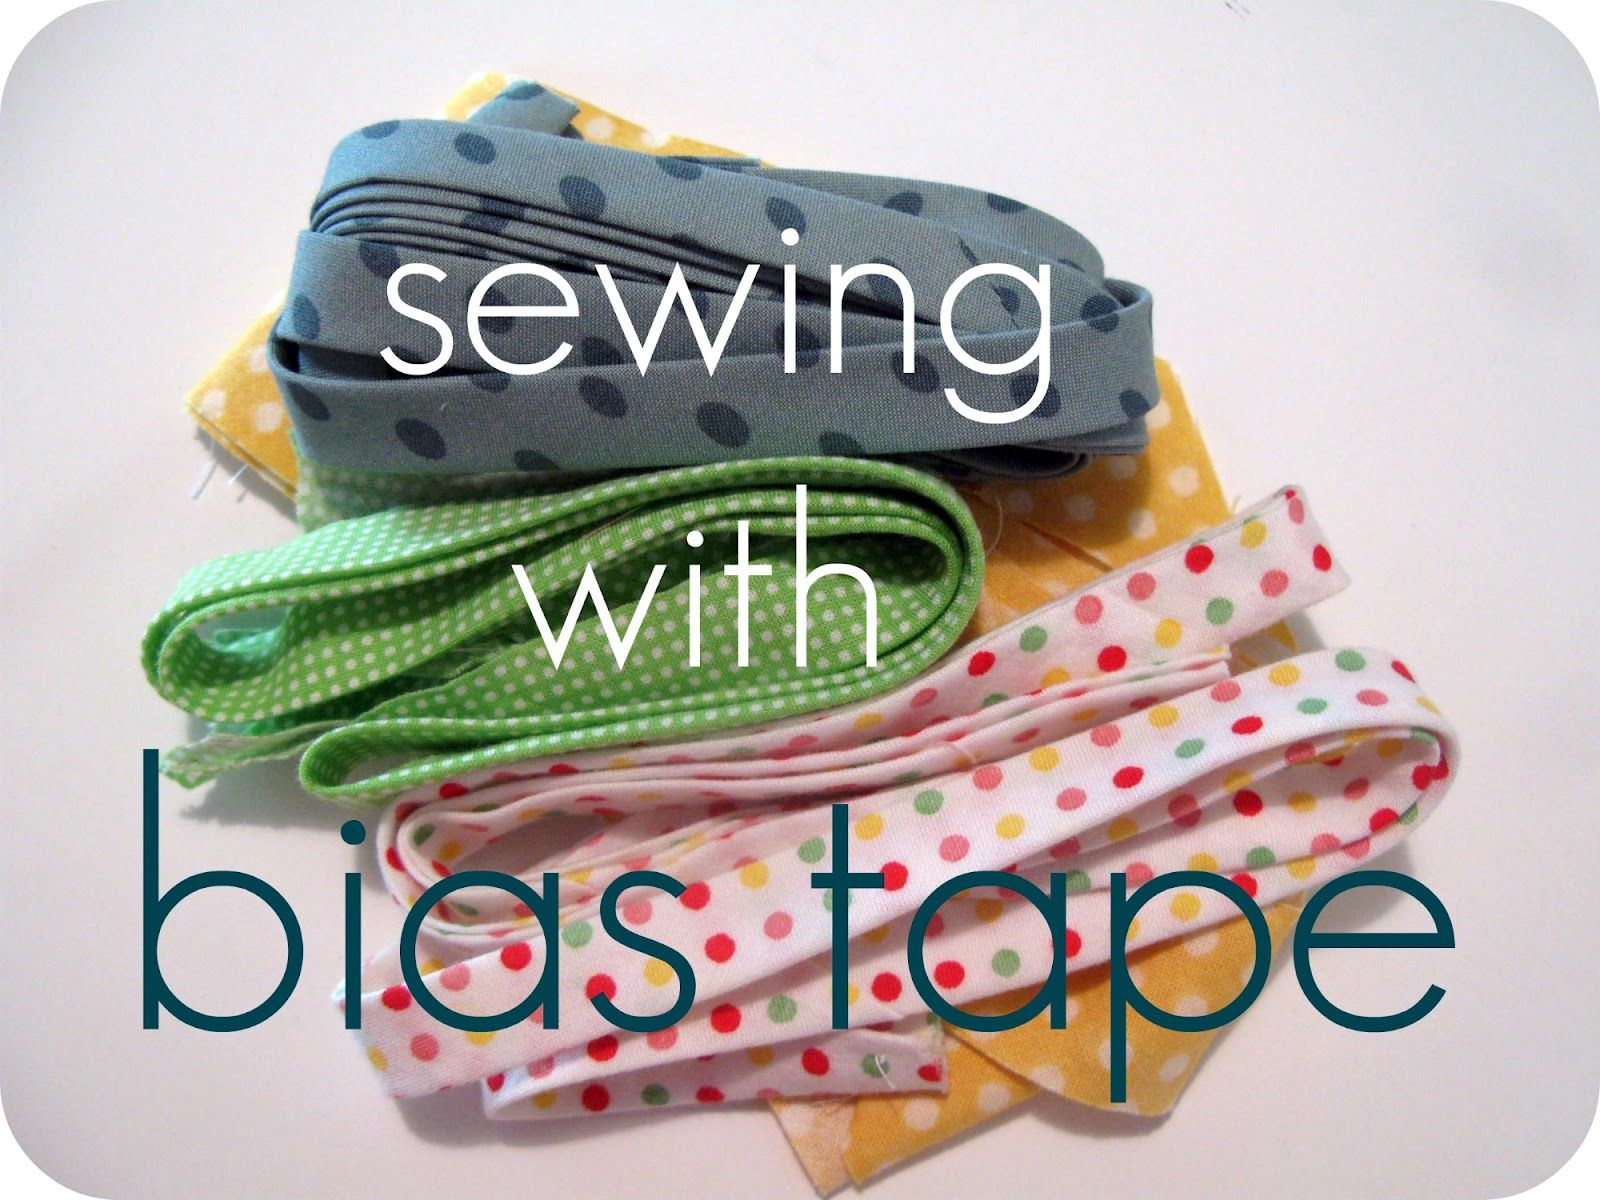 Caila-Made's Tutorial and Tips for Sewing with Bias Tape. Really, I am an experienced sewer, and I can sew bias cording like no one's business, but I made an absolute mess sewing a Christmas project with bias tape. I will be reading through these tips next time!